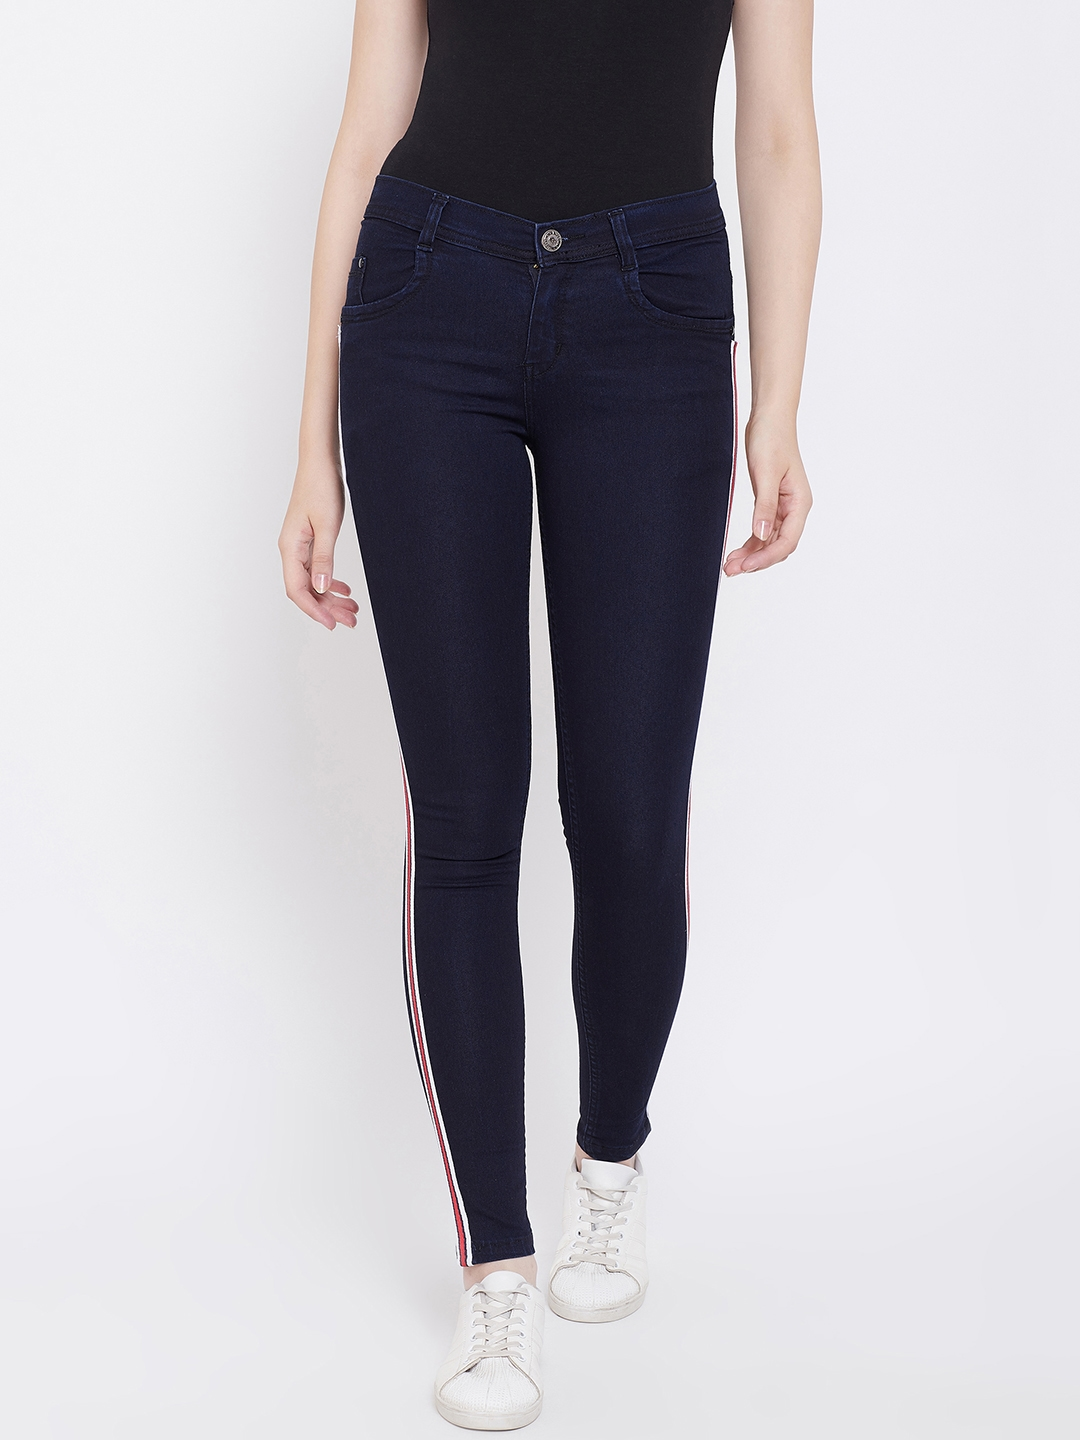 Nifty Women Navy Blue Slim Fit Mid Rise Clean Look Stretchable Jeans